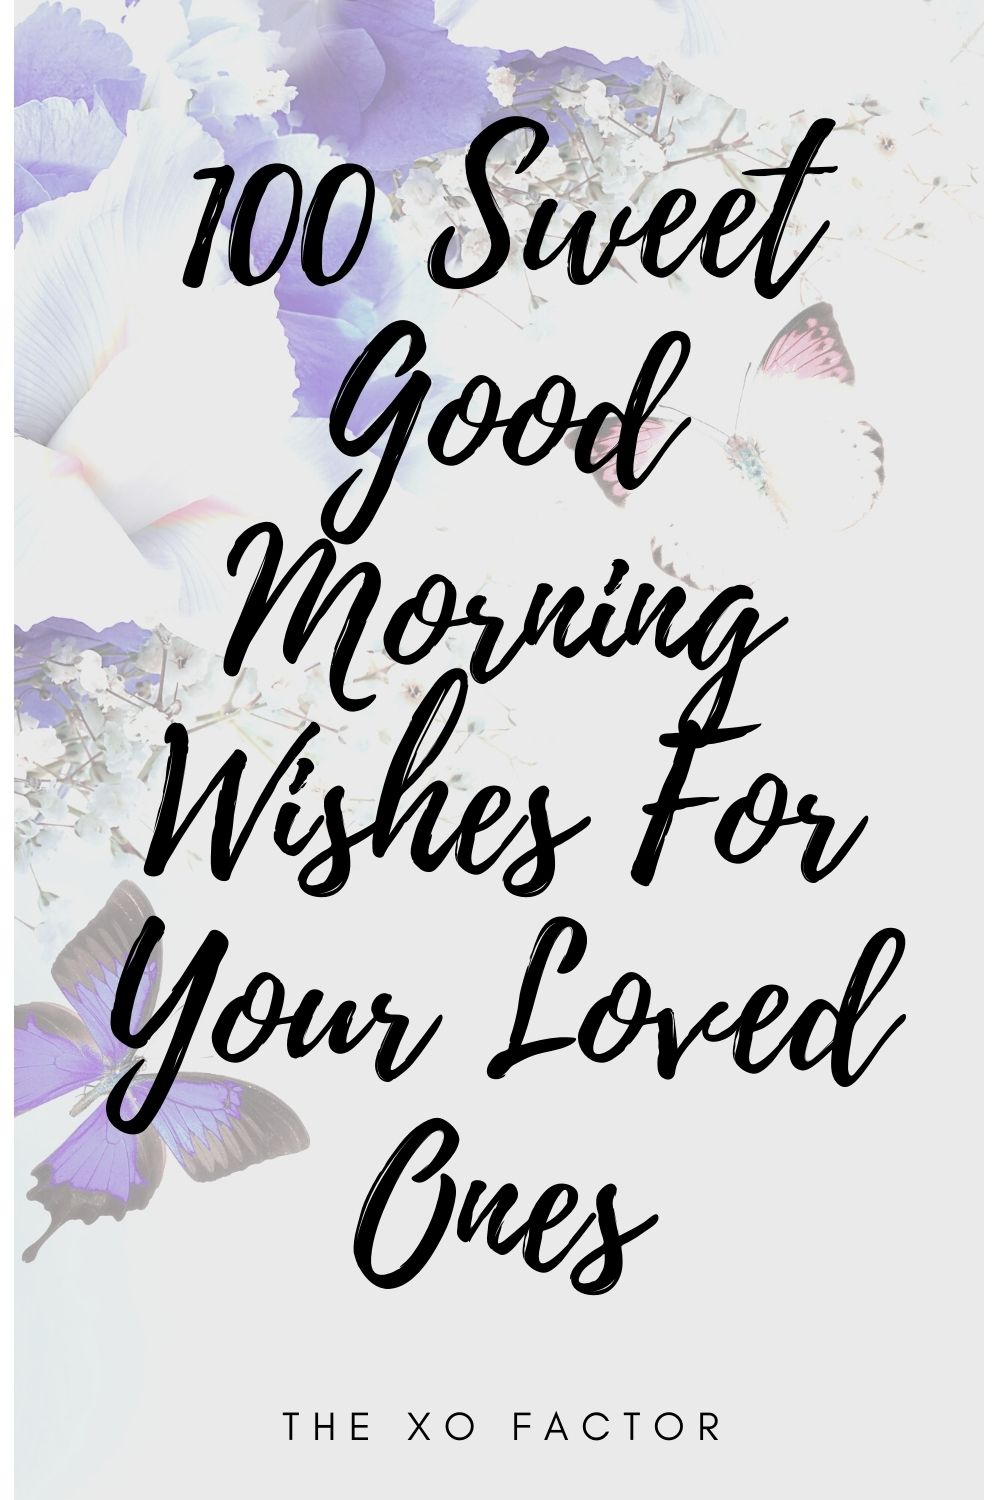 100 sweet good morning wishes for your loved ones